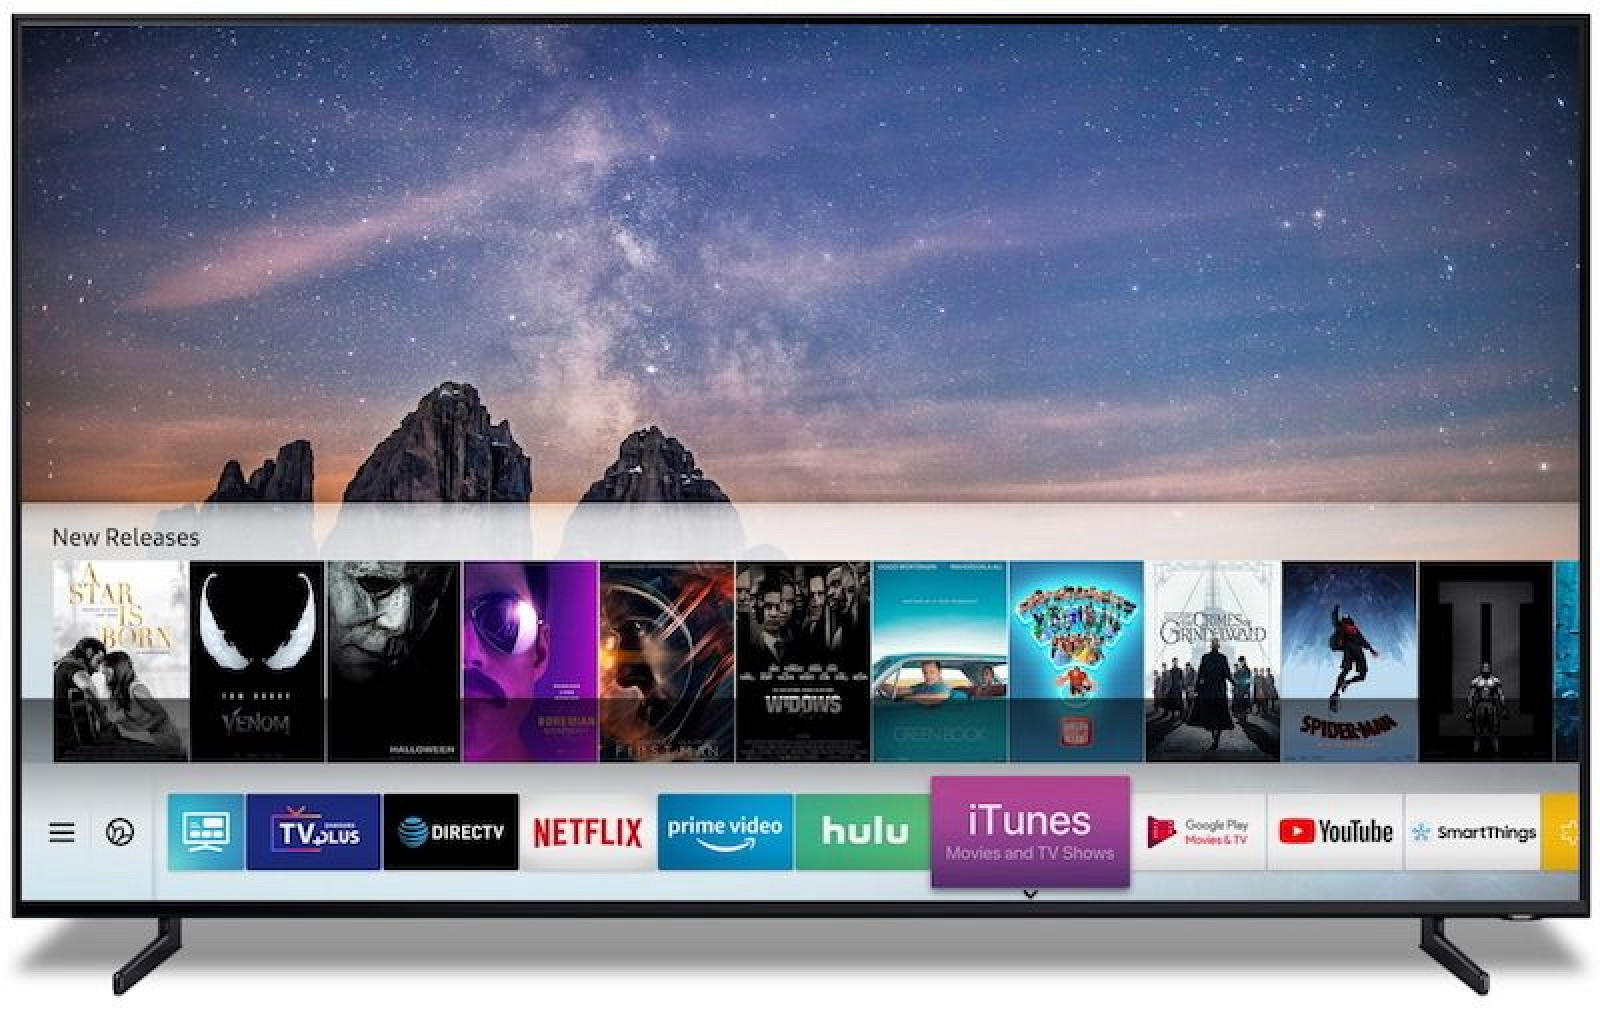 Apple Shares List of AirPlay 2-Enabled Smart TVs From Samsung, LG, Sony, and Vizio - Mac Rumors